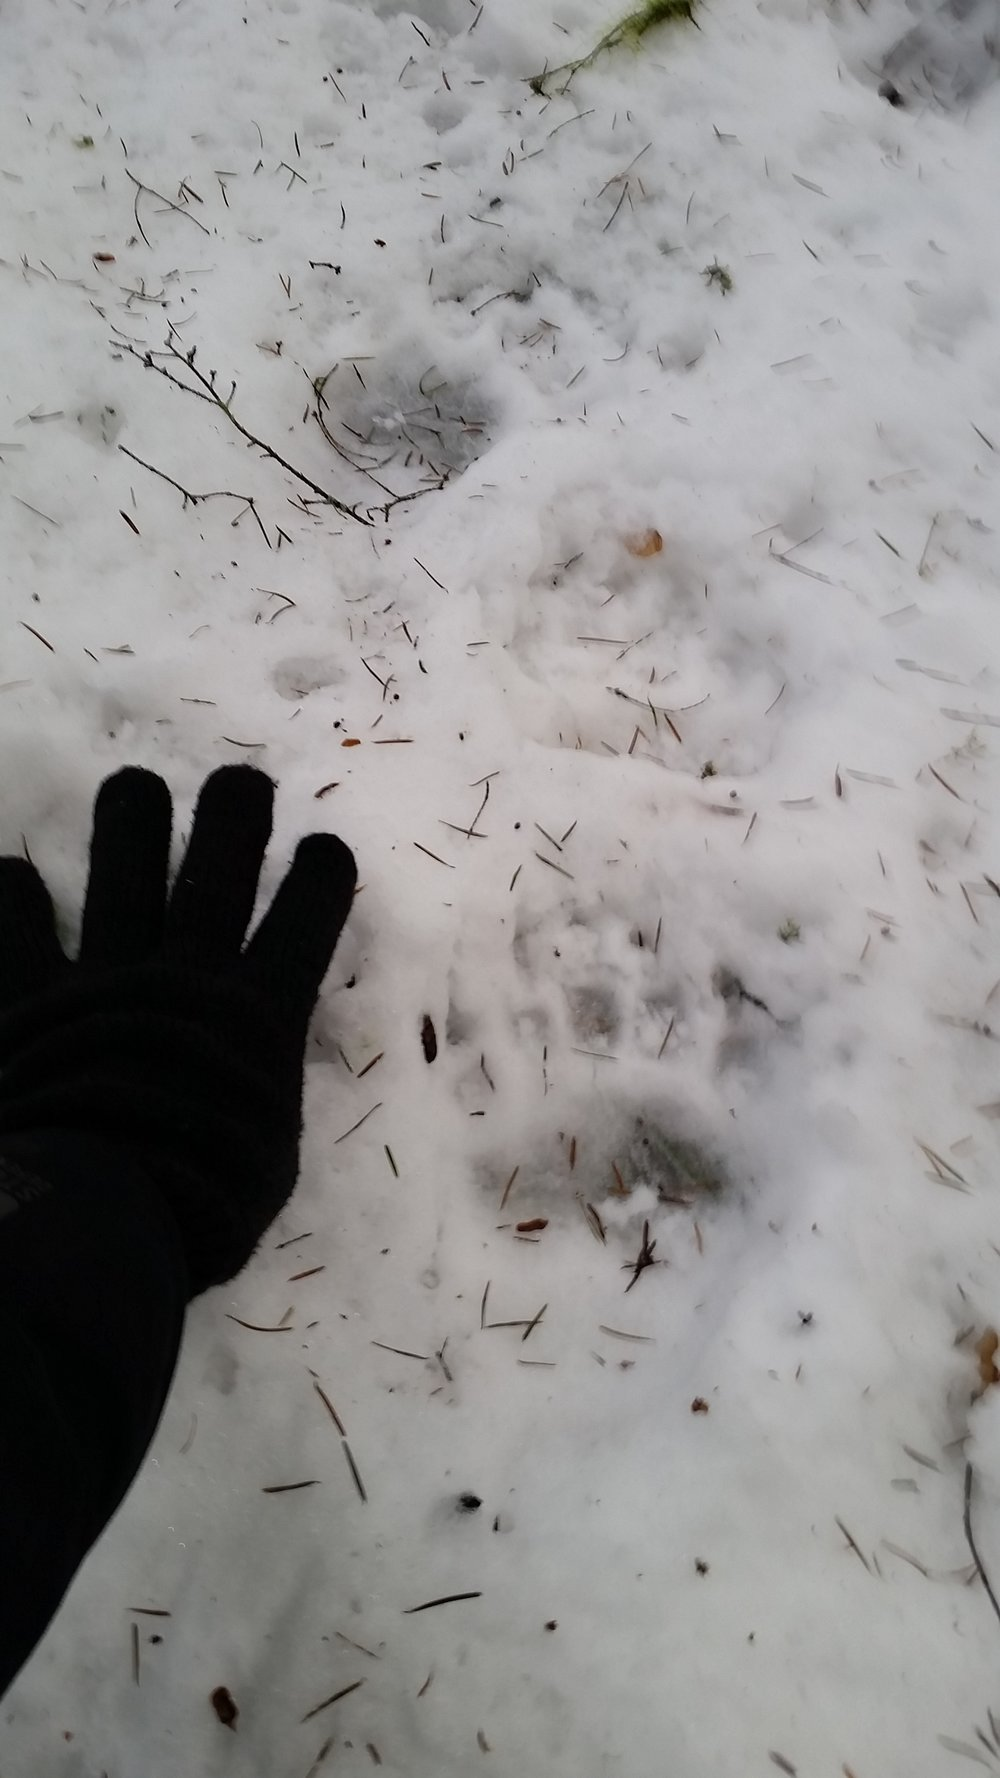 Tracks from the bear who led me.